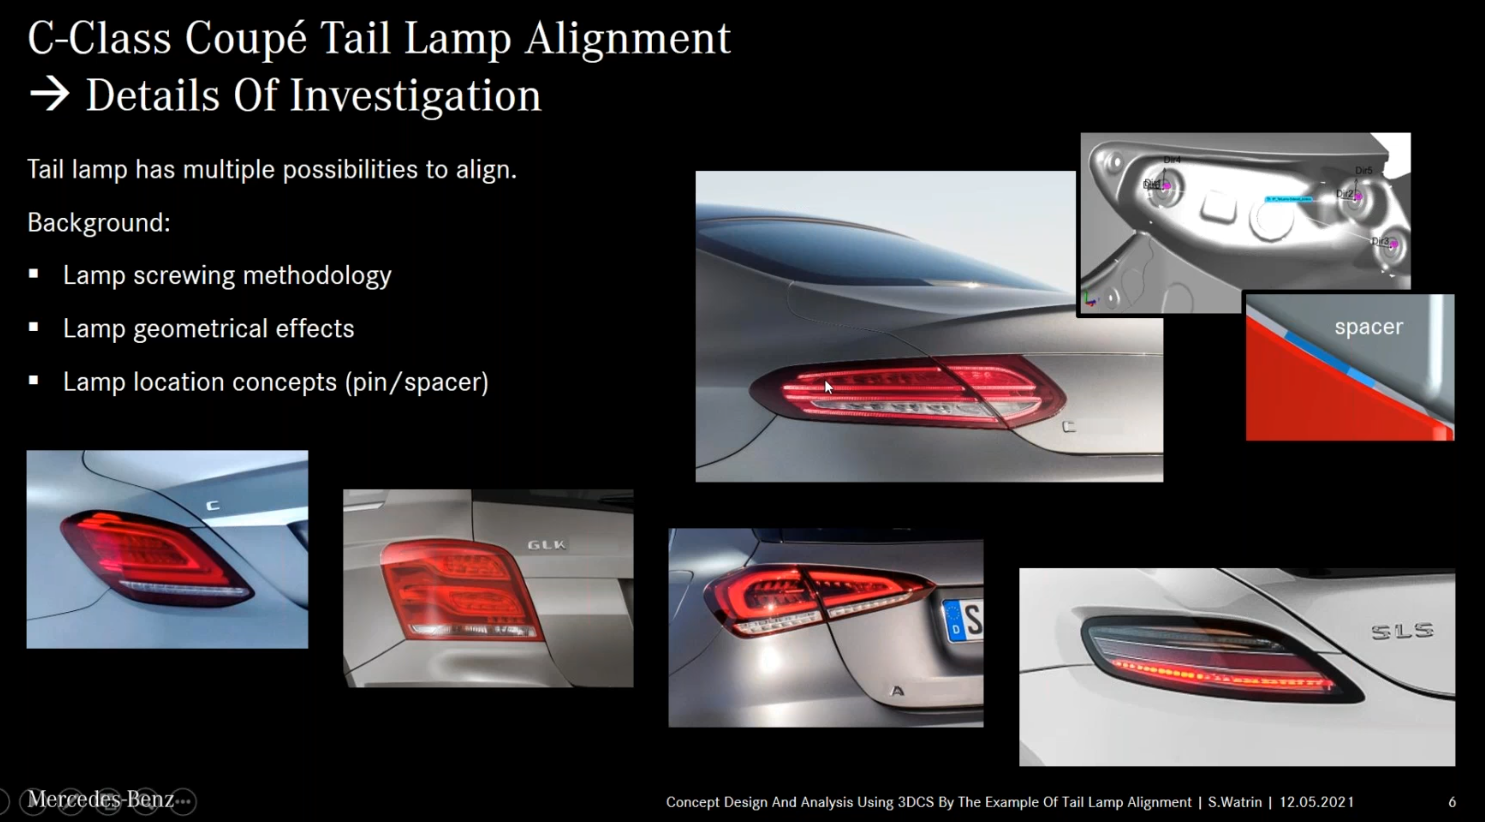 DCS Welcomes Mercedes Benz AG to Present Concept Design and Analysis Using 3DCS MultiCAD with Tail Lamp Alignment Example